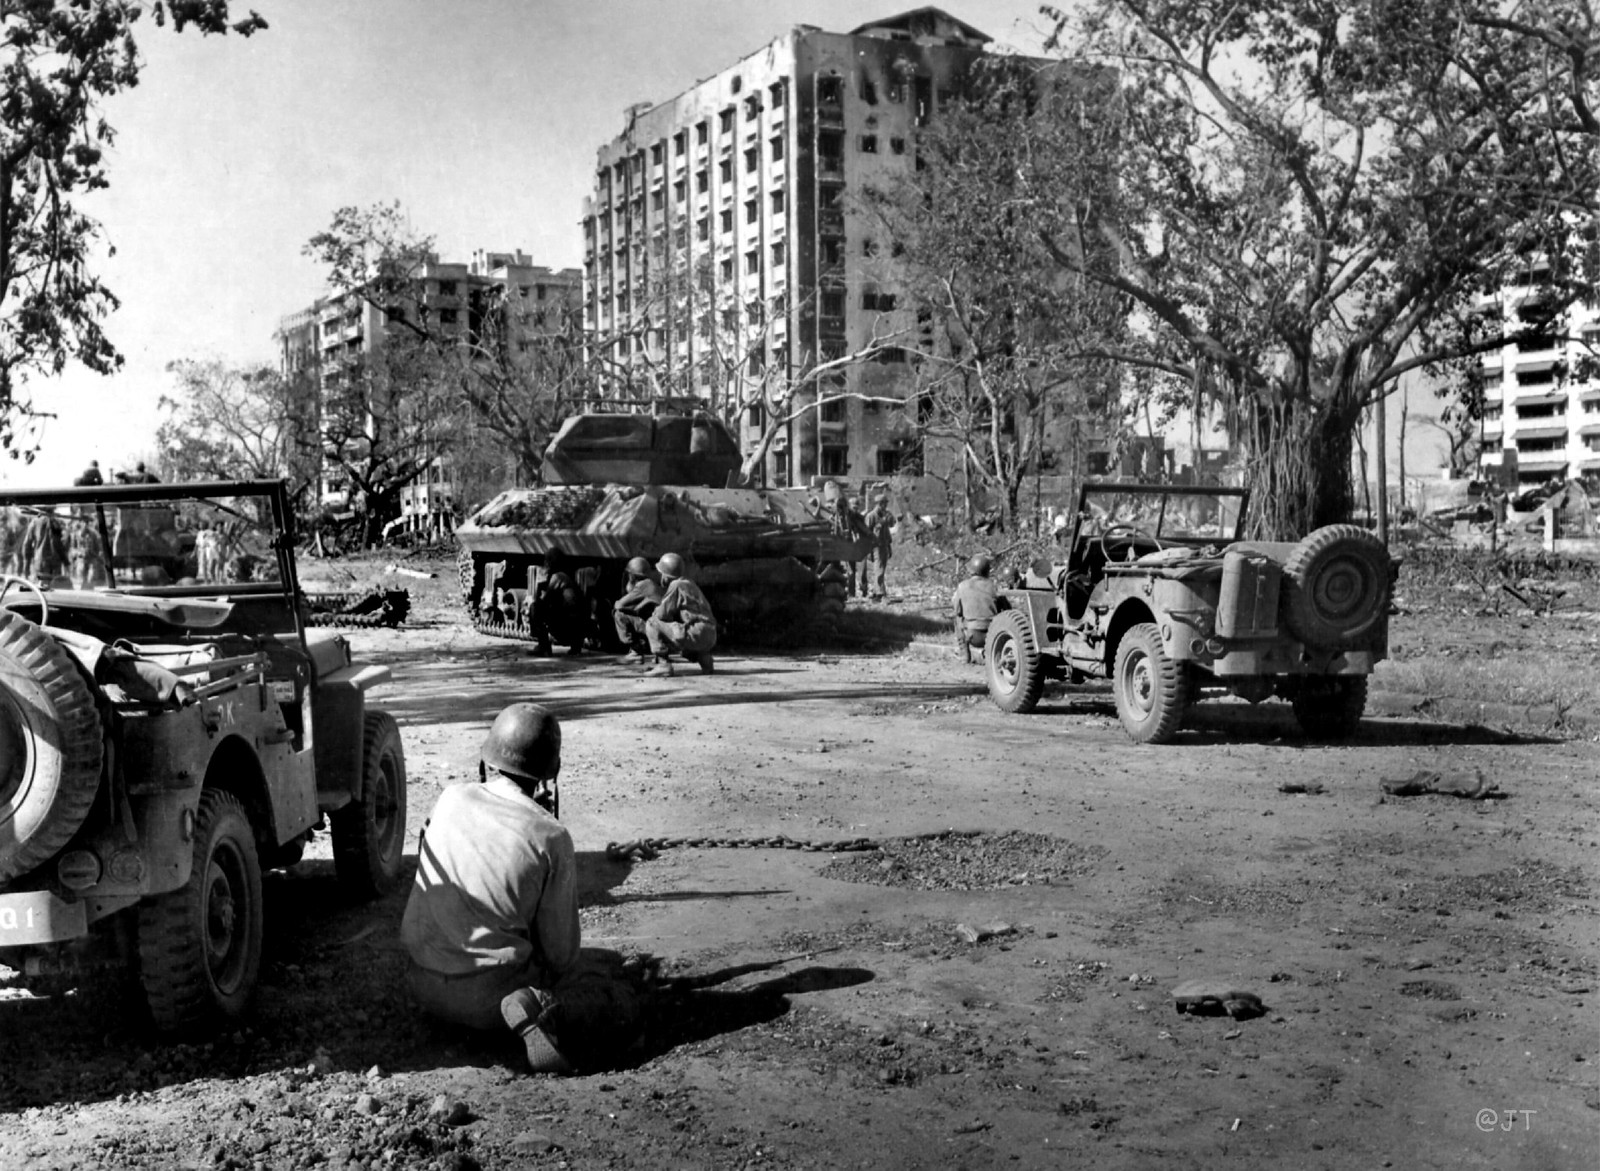 American Soldiers Taking Cover Behind Tanks As The Tanks Proceed Into The  City Down Dewey Blvd., (Roxas Blvd.), Manila, Philippines, Feb. 1945